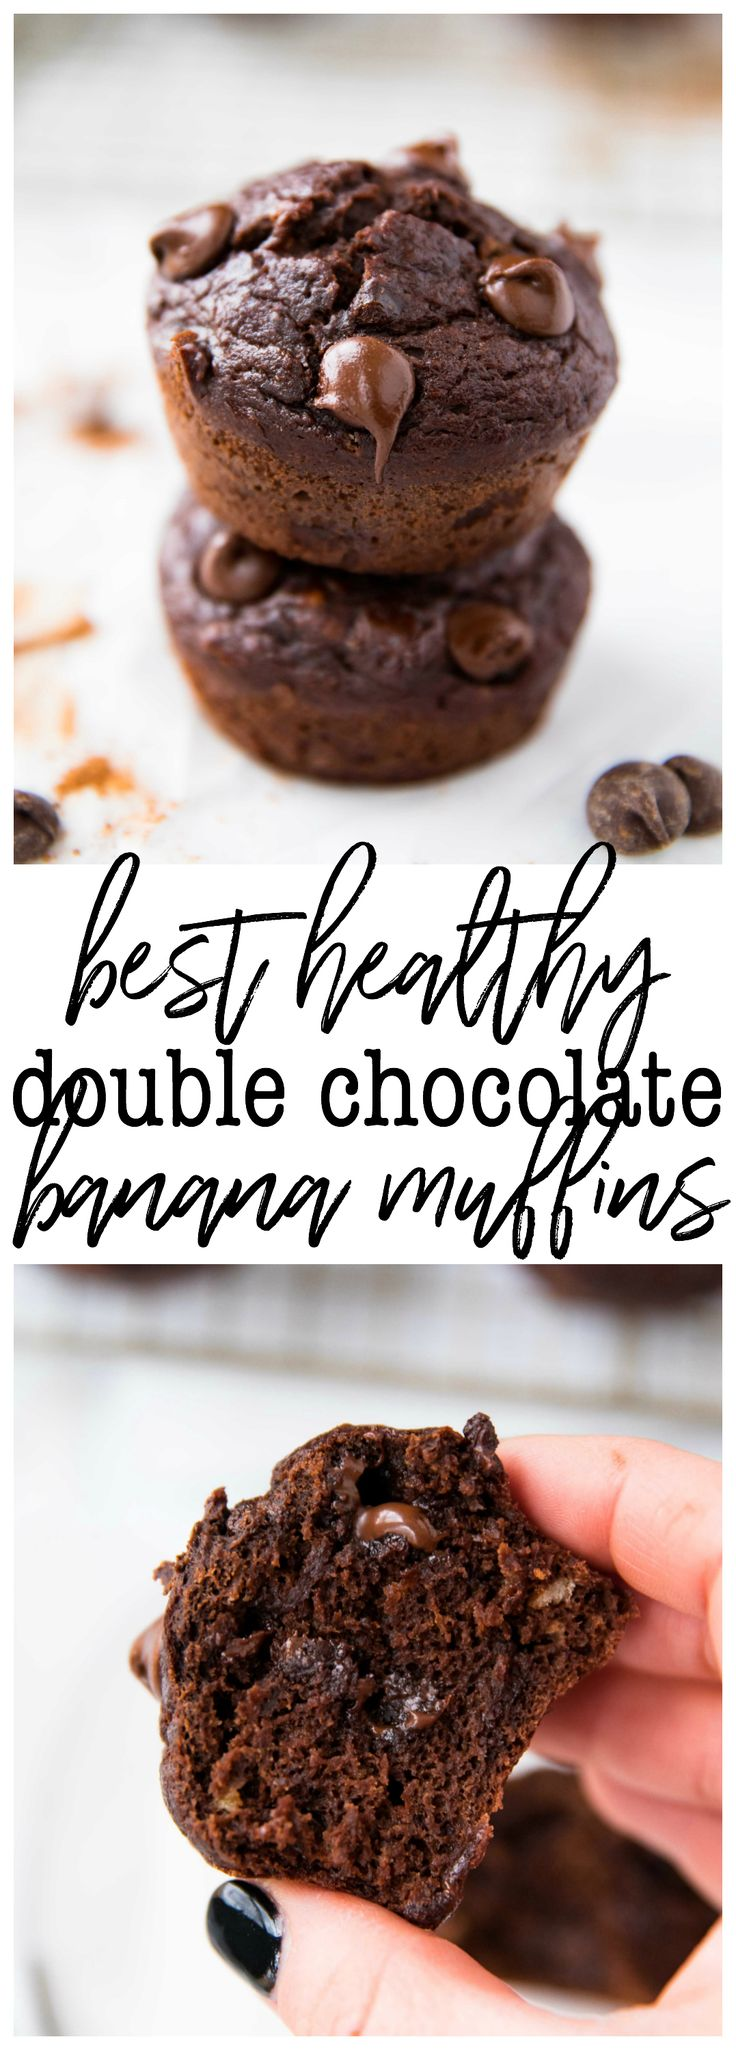 The Best Healthy Double Chocolate Banana Muffins - Super tender, fudgy and bursting with chocolate flavor – they're EVERYTHING!